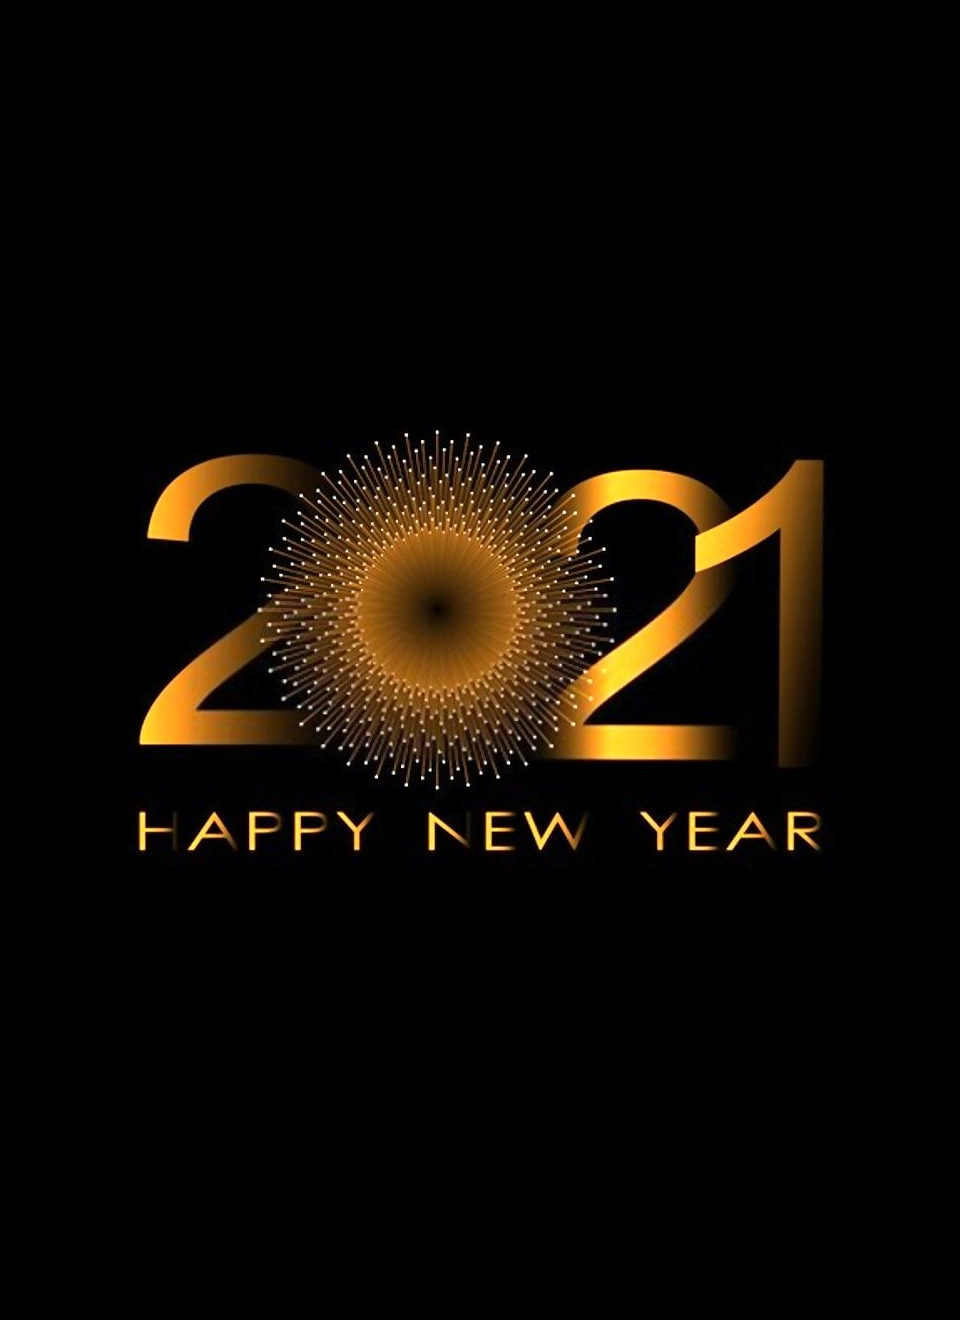 Stylized Happy New Year 2021 image with greetings from the Clark Davis Associates staffing team!